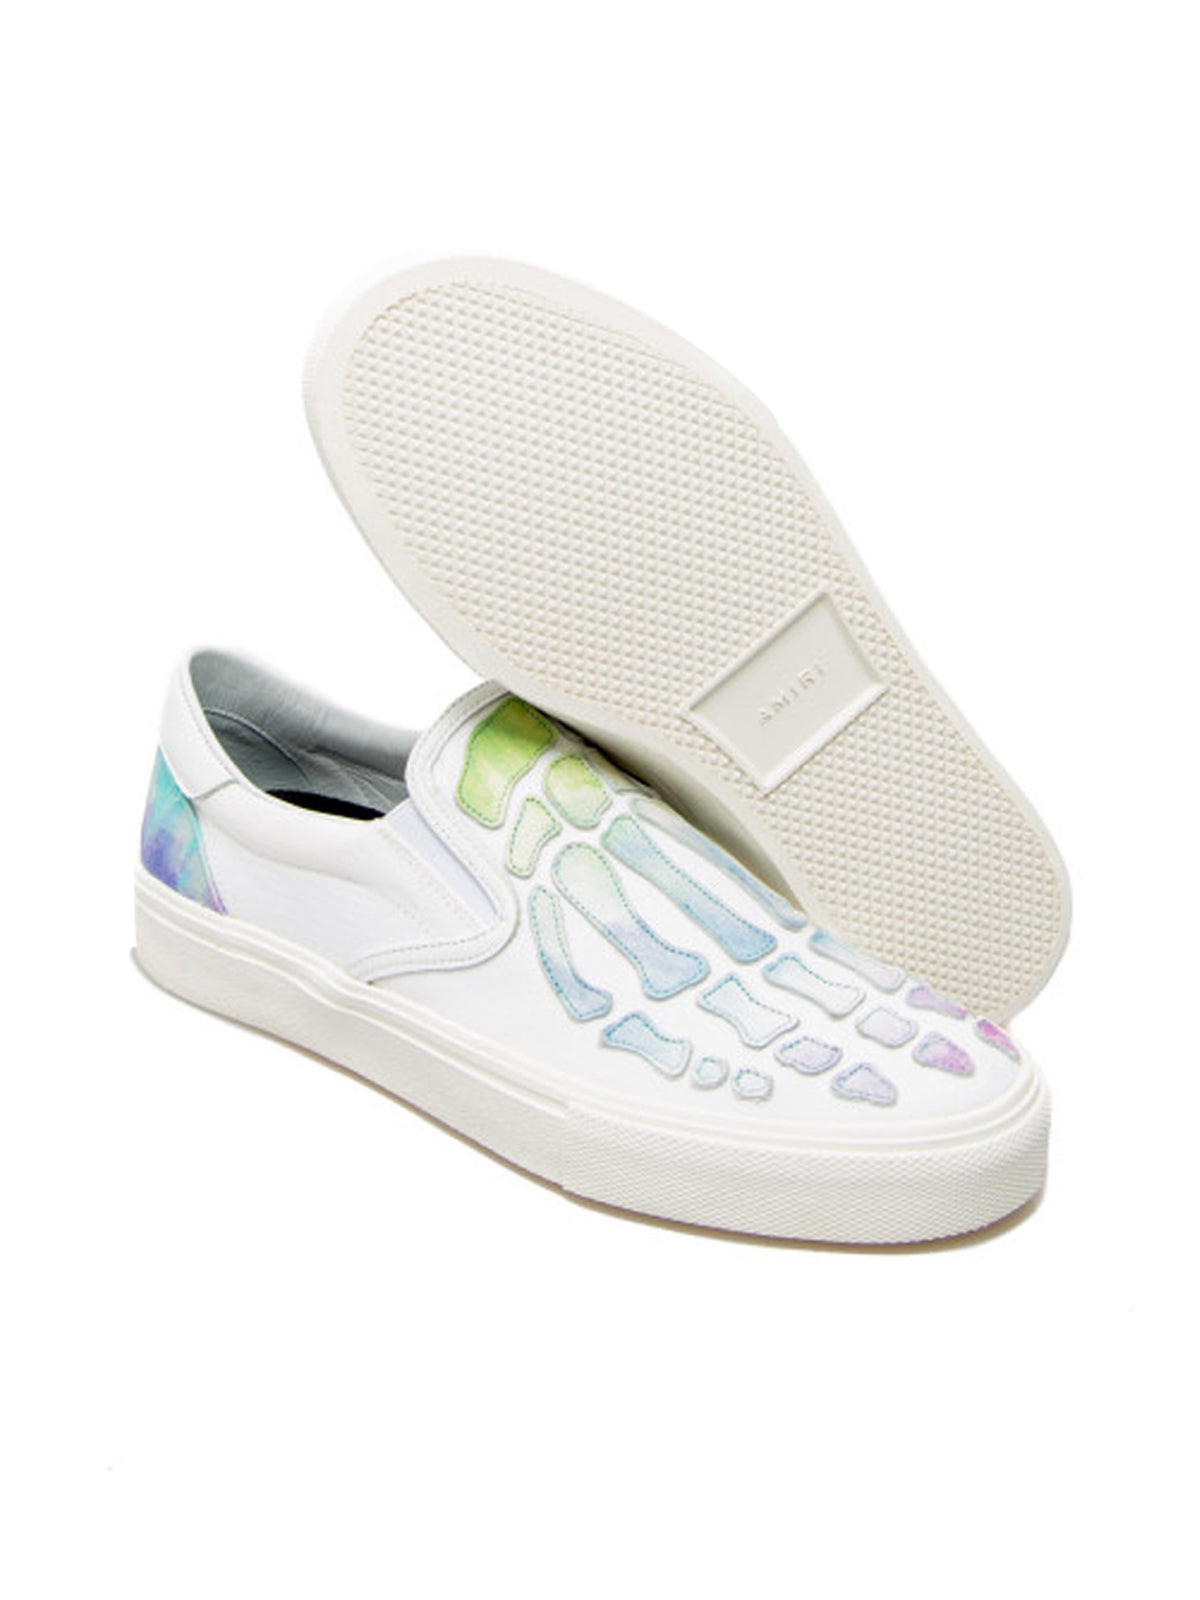 Watercolor Skel Toe Slip On